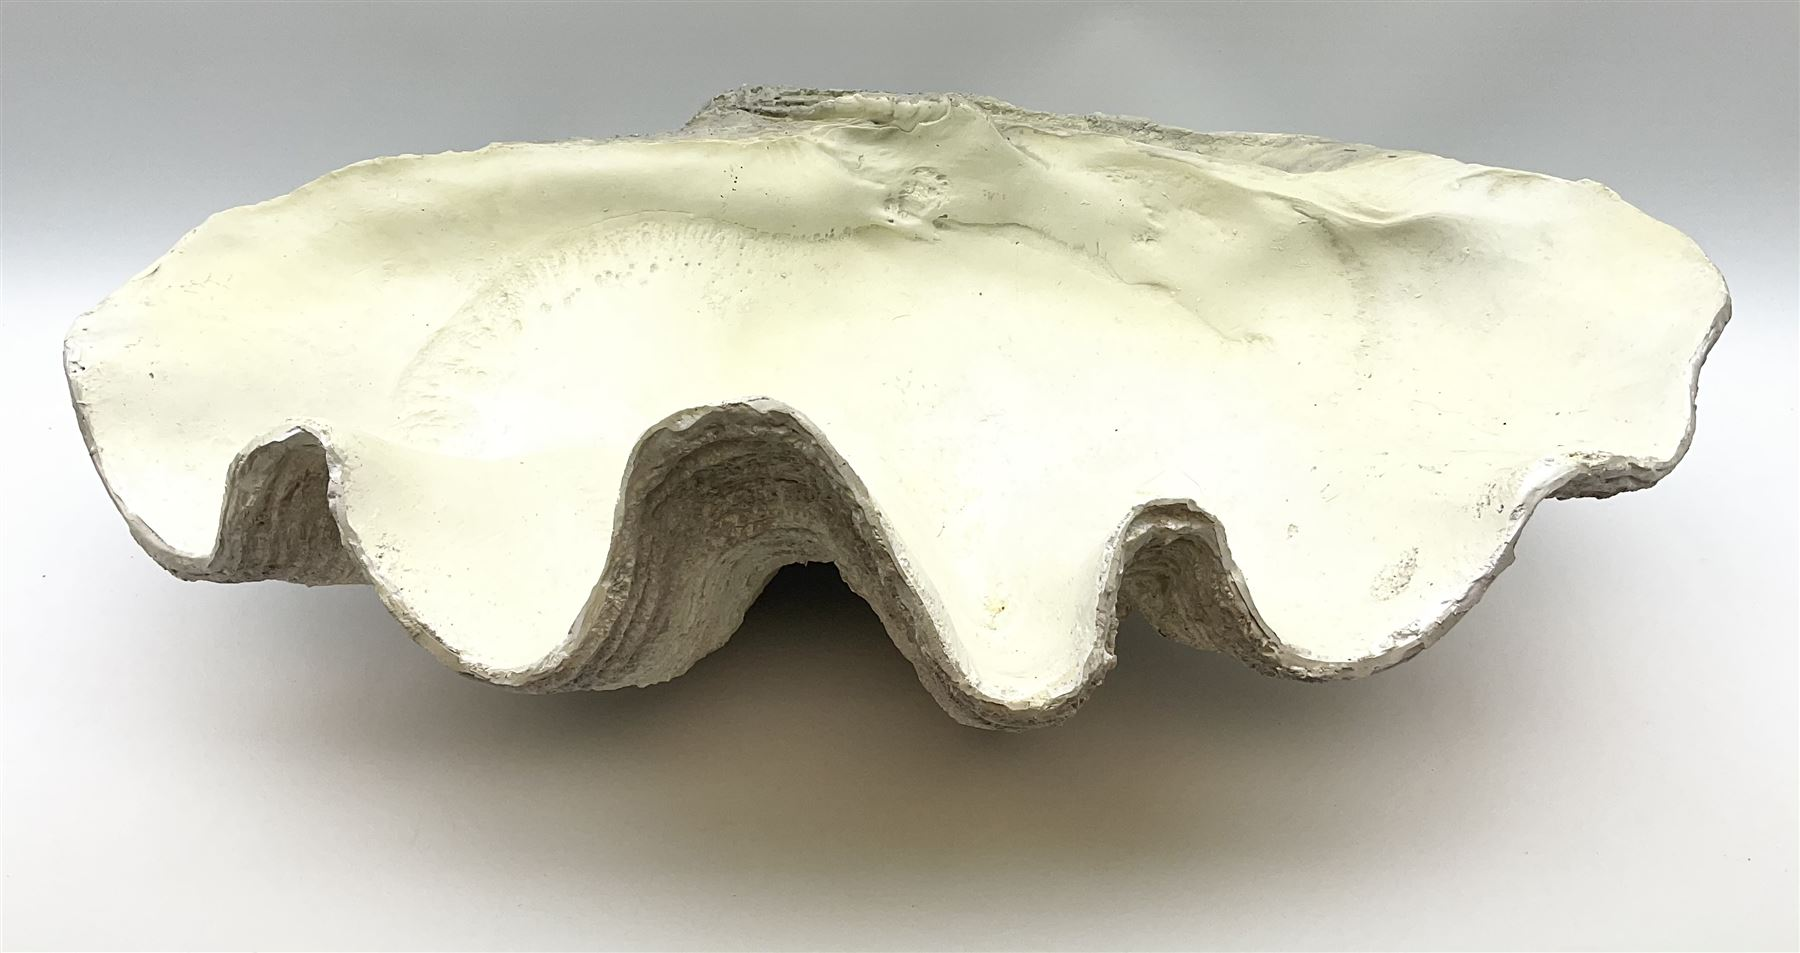 A composite model of a clam shell